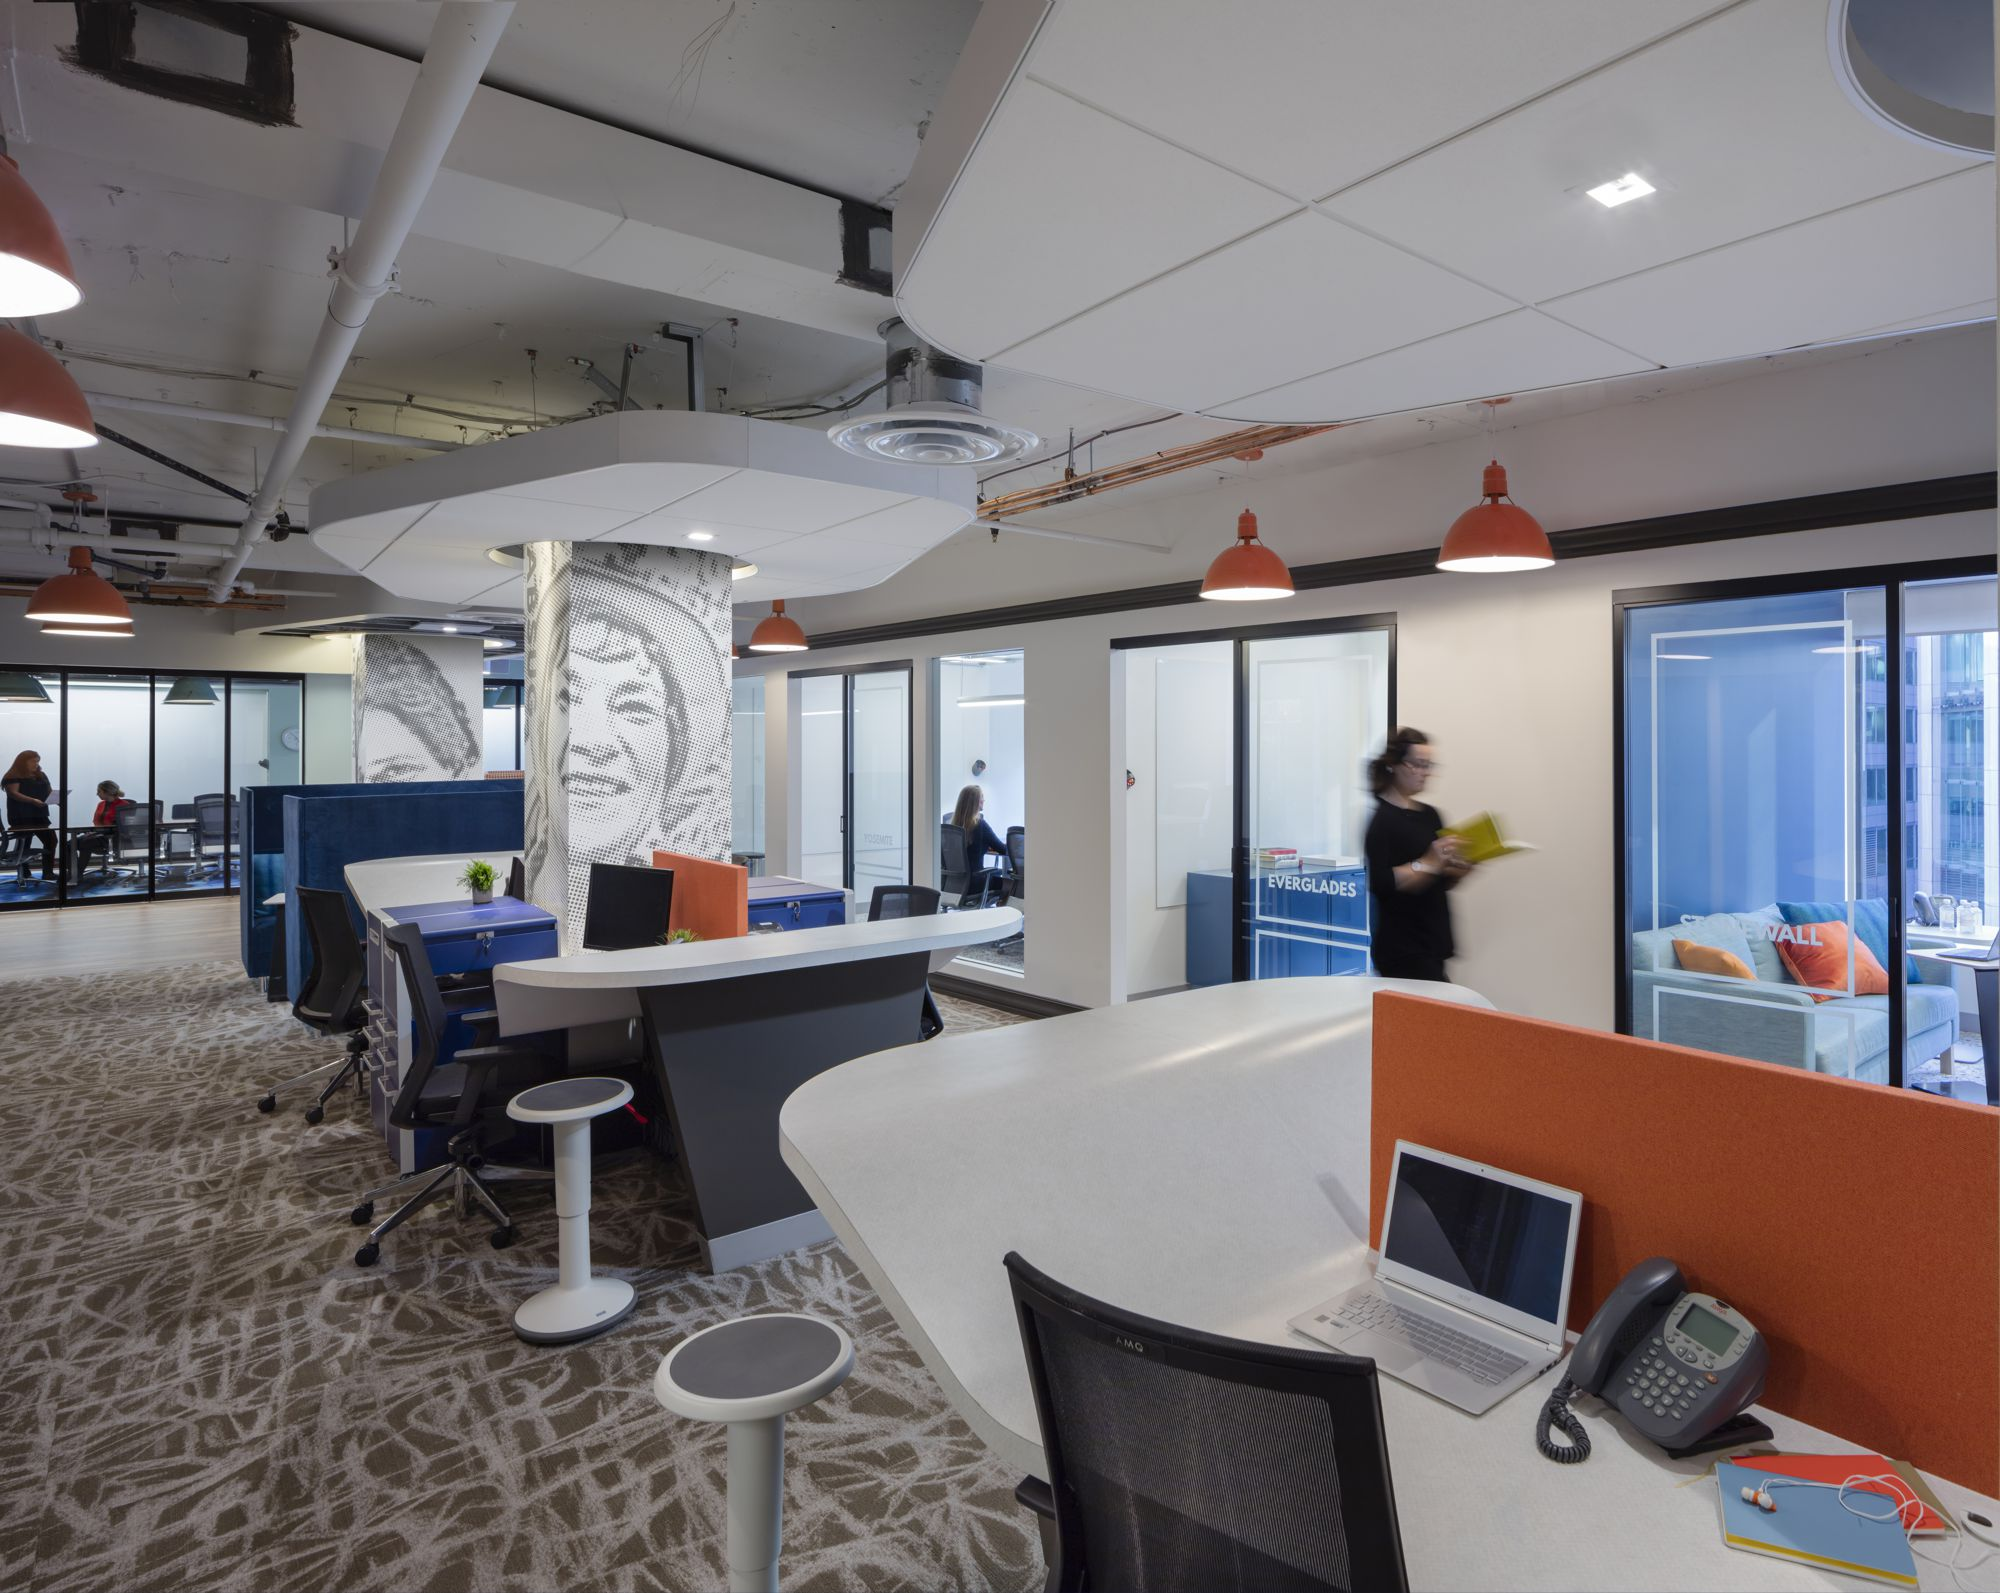 This allowed ample space to be given to the open work stations and meeting rooms along the windows. These offices allow for heads-down work, but encourage occupants to move and utilize purpose-built collaboration spaces.